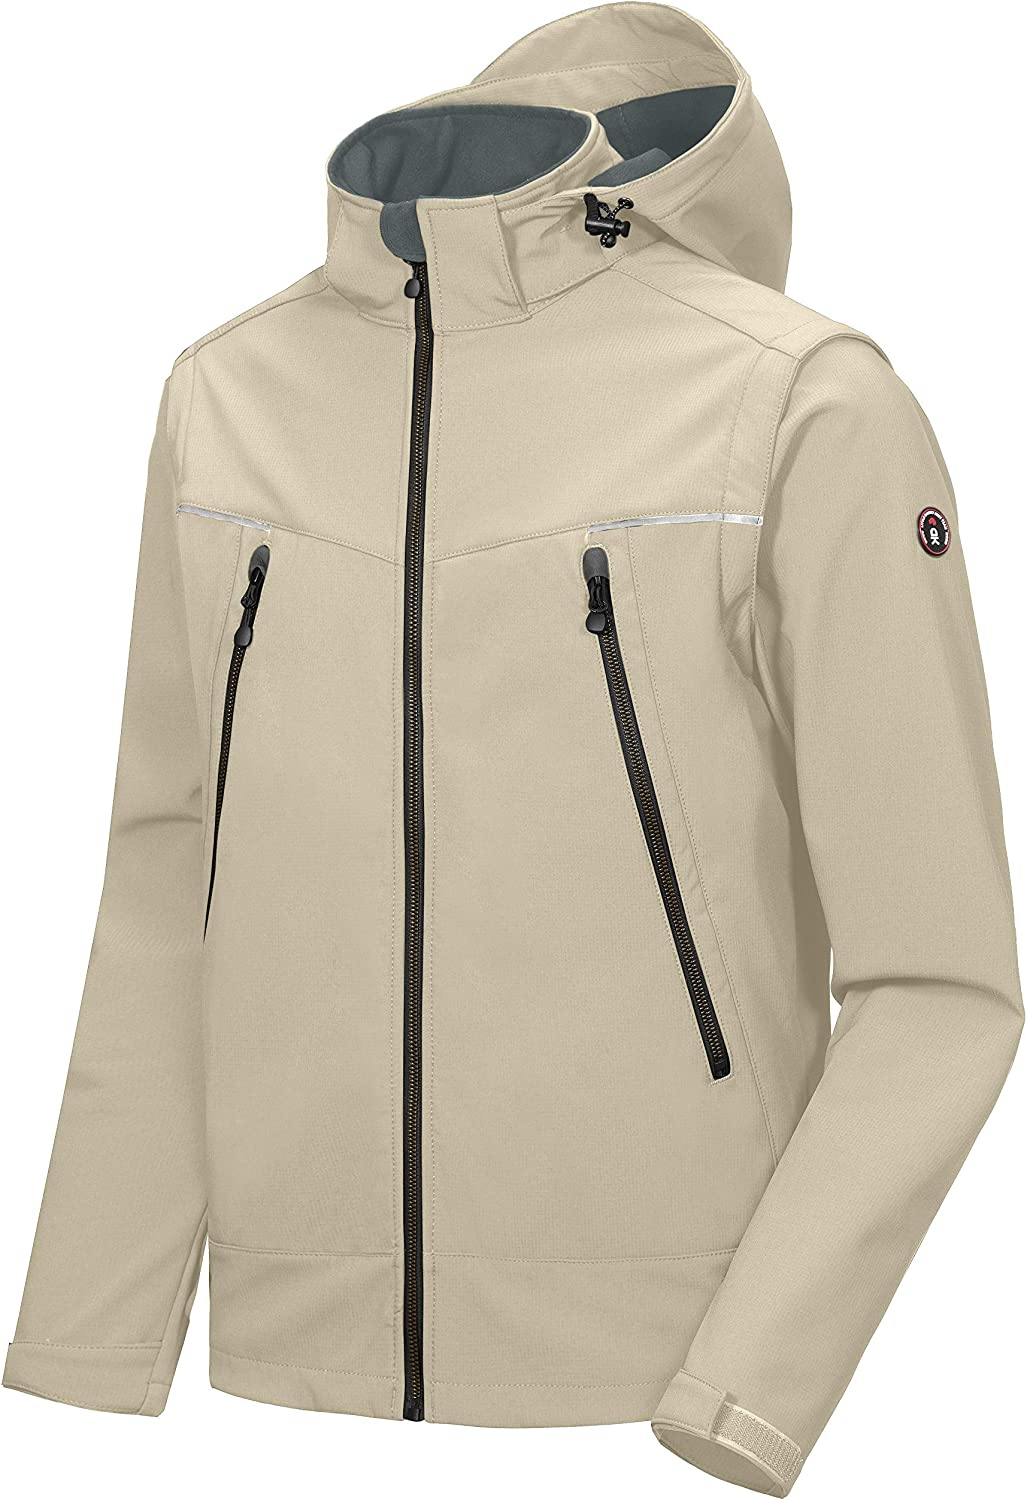 Little Donkey Andy Courier shipping free Men's Waterproof Sale SALE% OFF Jacket with Detach Softshell